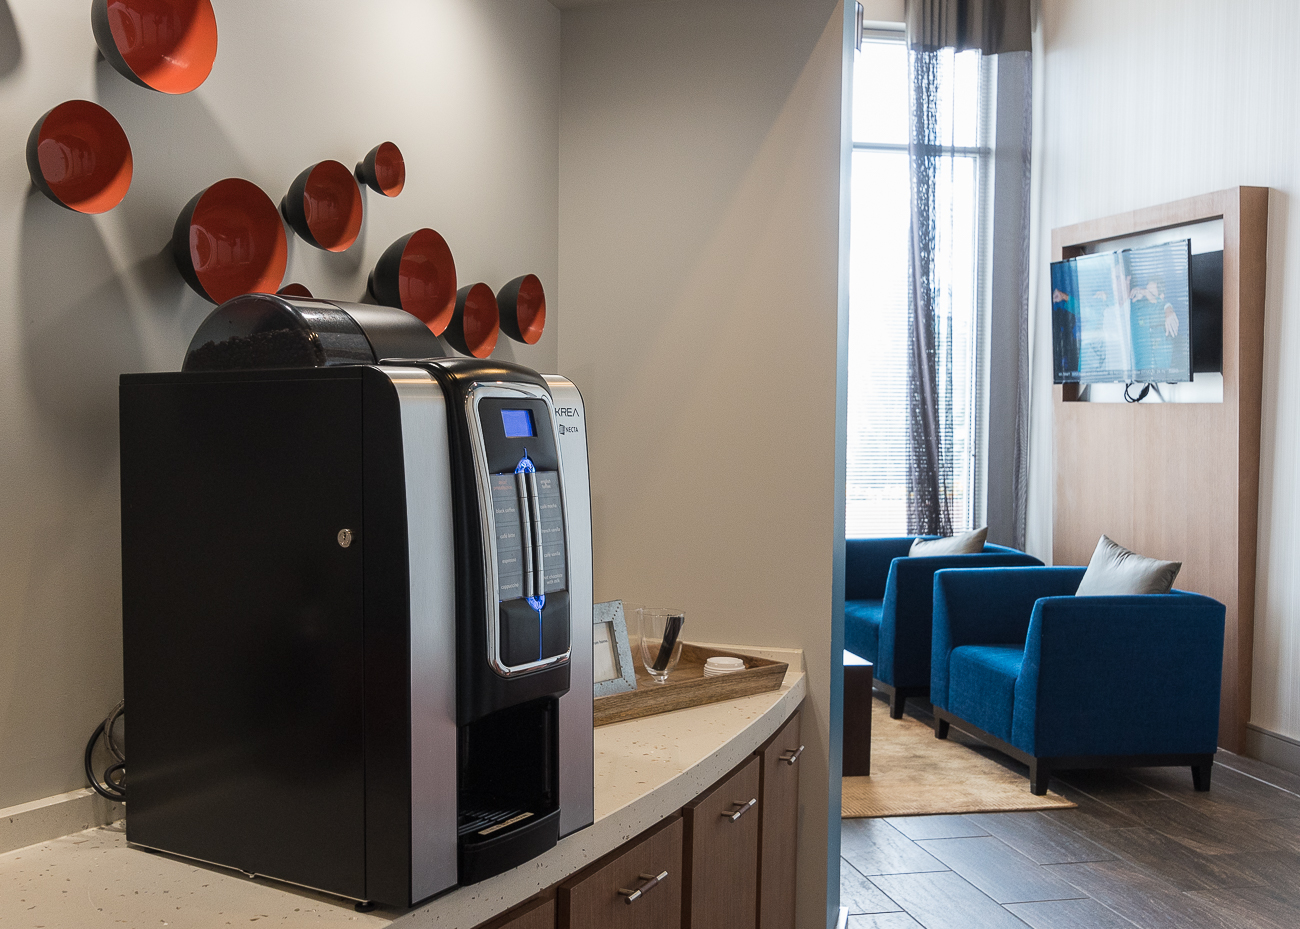 The cyber cafe and lounge with complimentary coffee machine / Image: Phil Armstrong, Cincinnati Refined // Published: 4.12.18